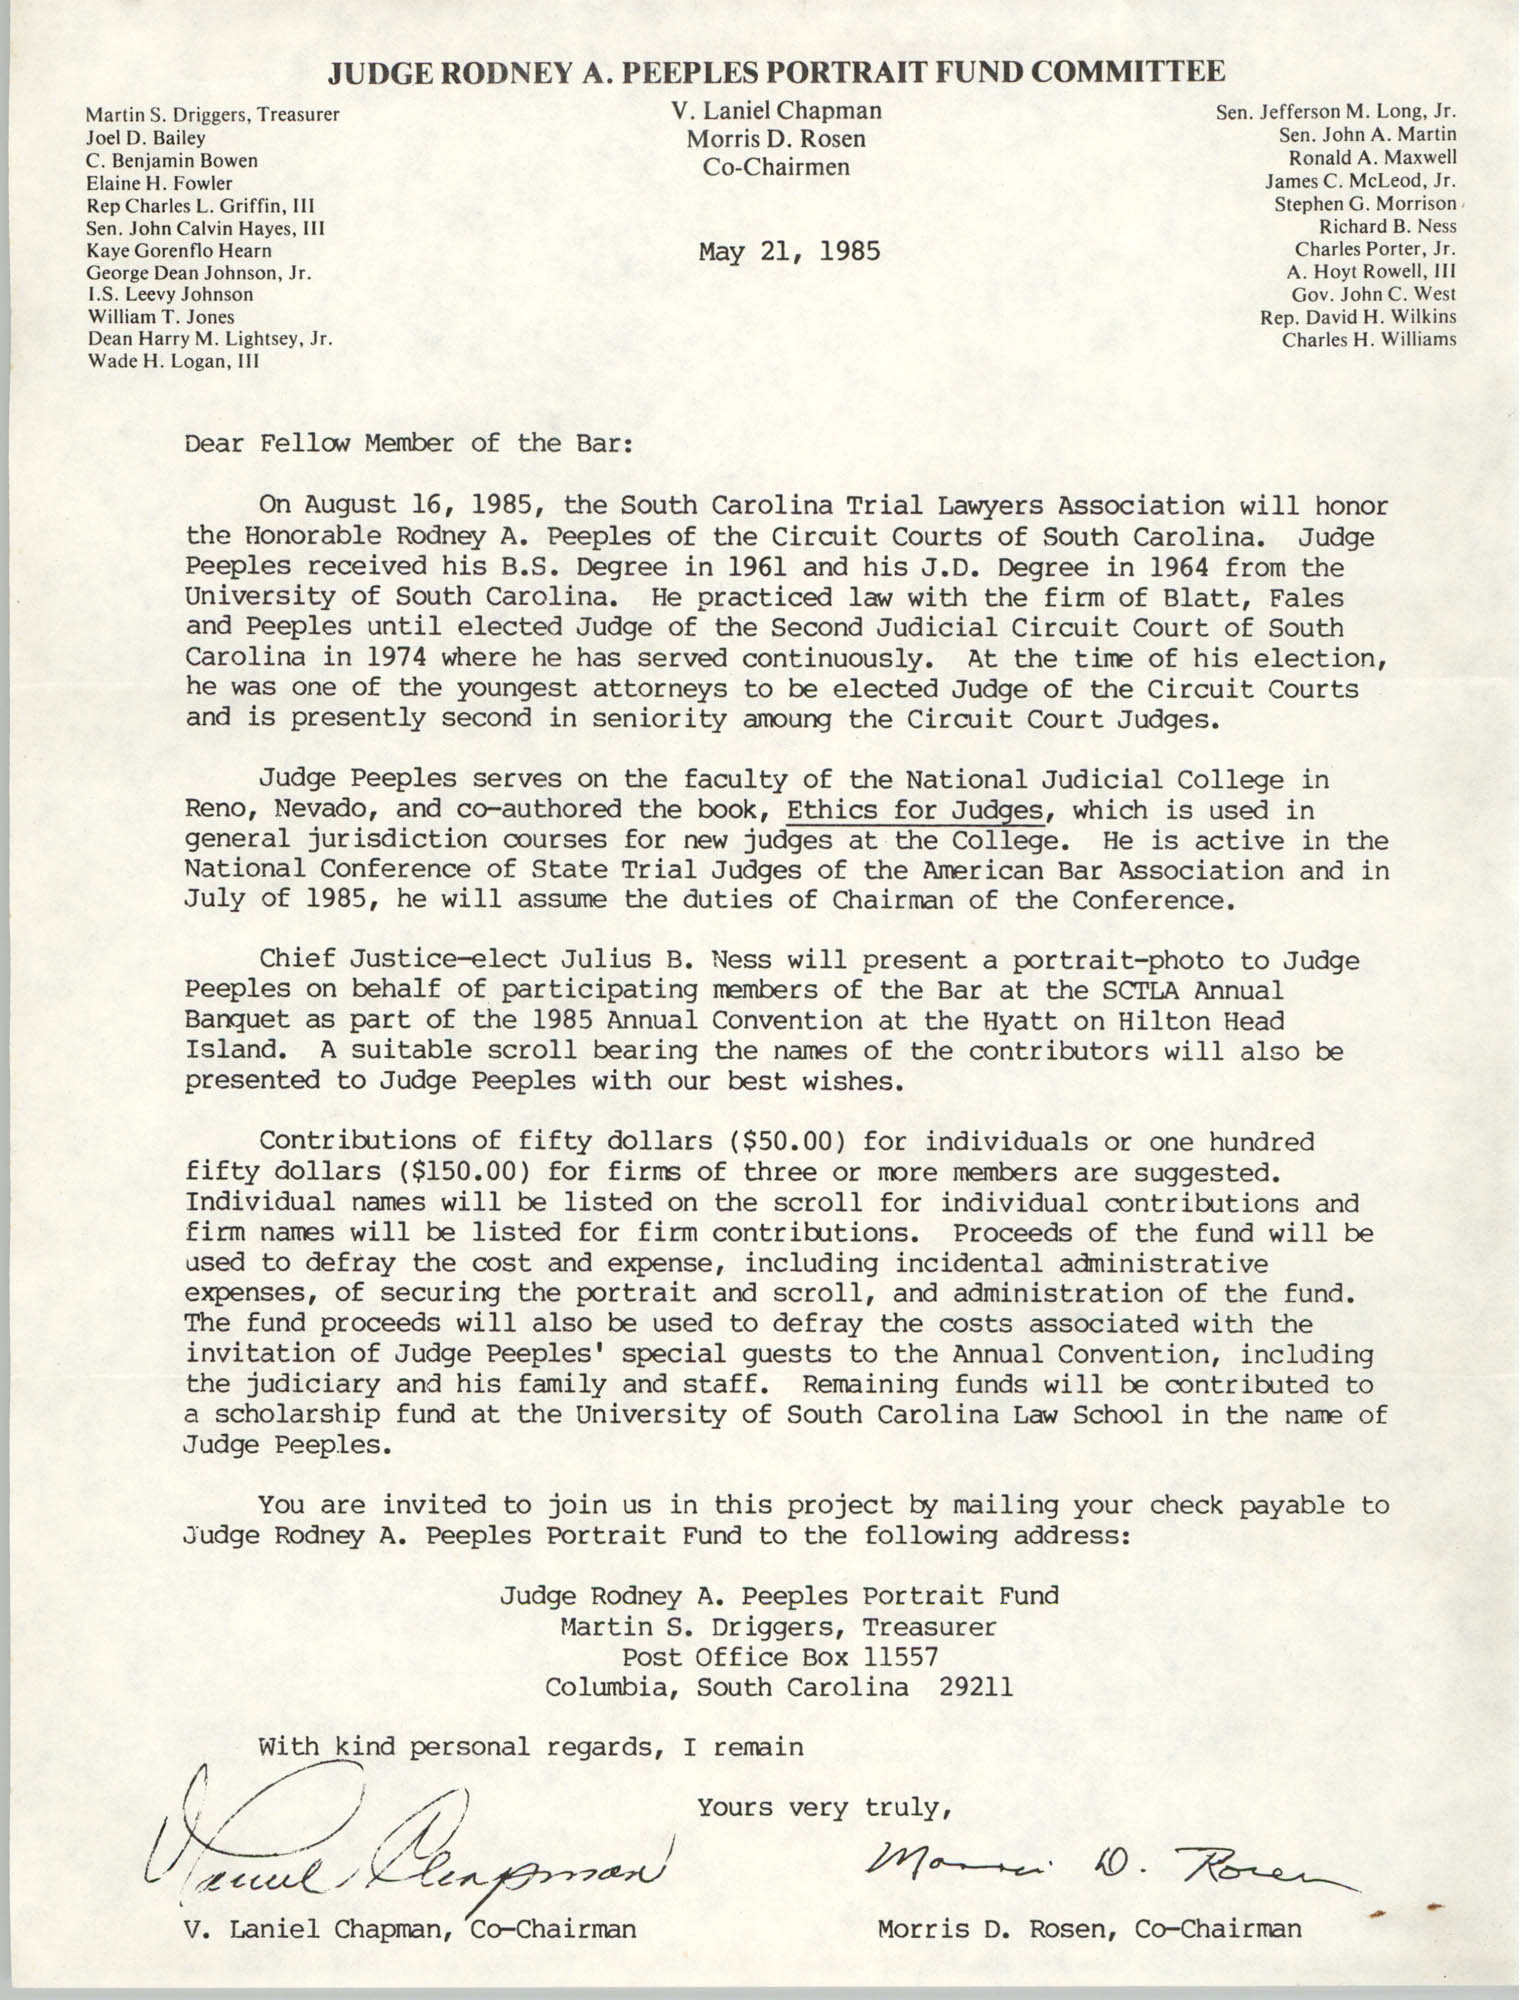 Letter from V. Laniel Chapman and Morris D. Rosen, May 21, 1985